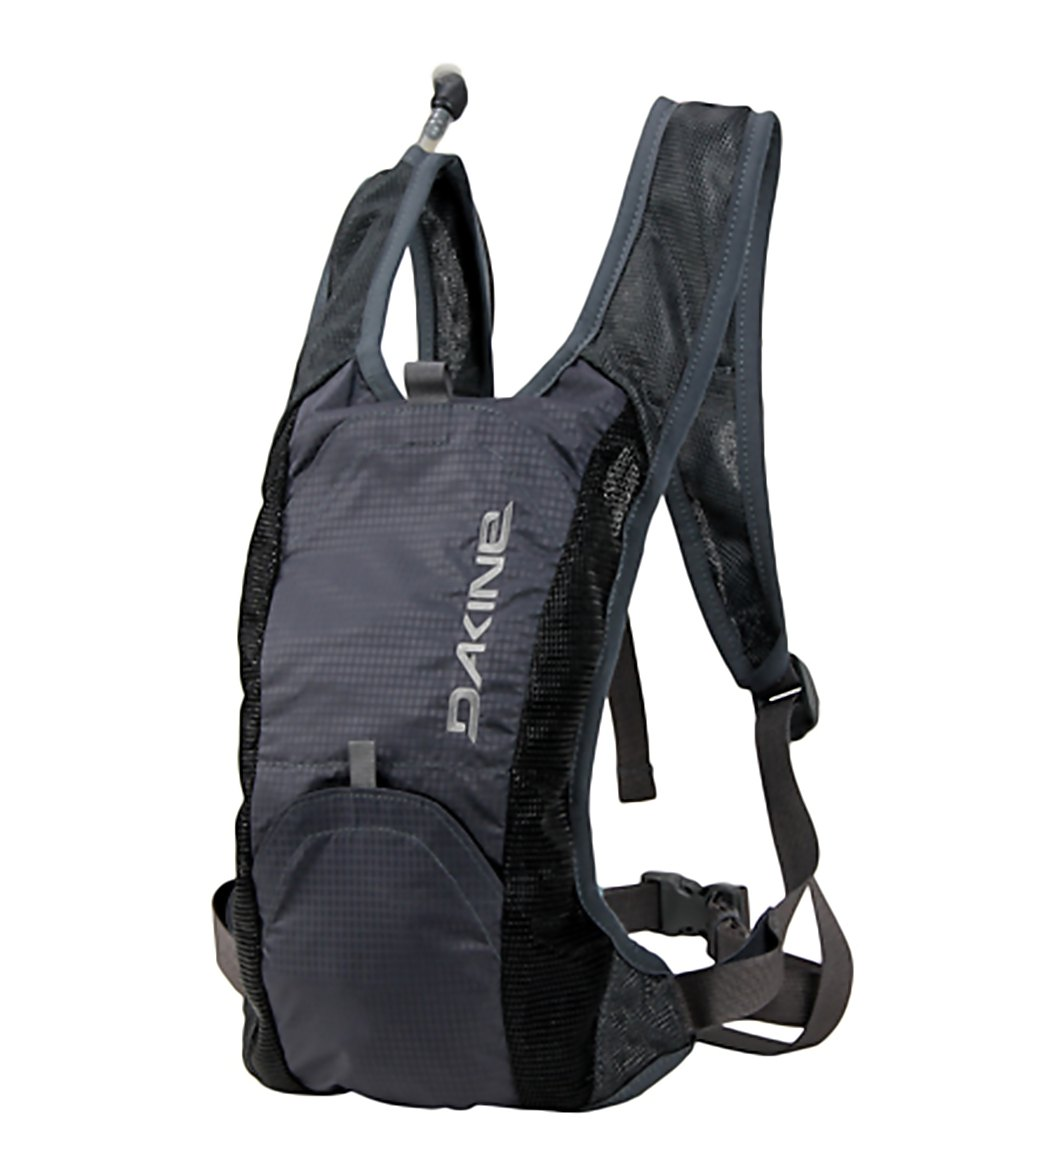 Dakine Waterman Hydration Pack at SwimOutlet.com - Free Shipping